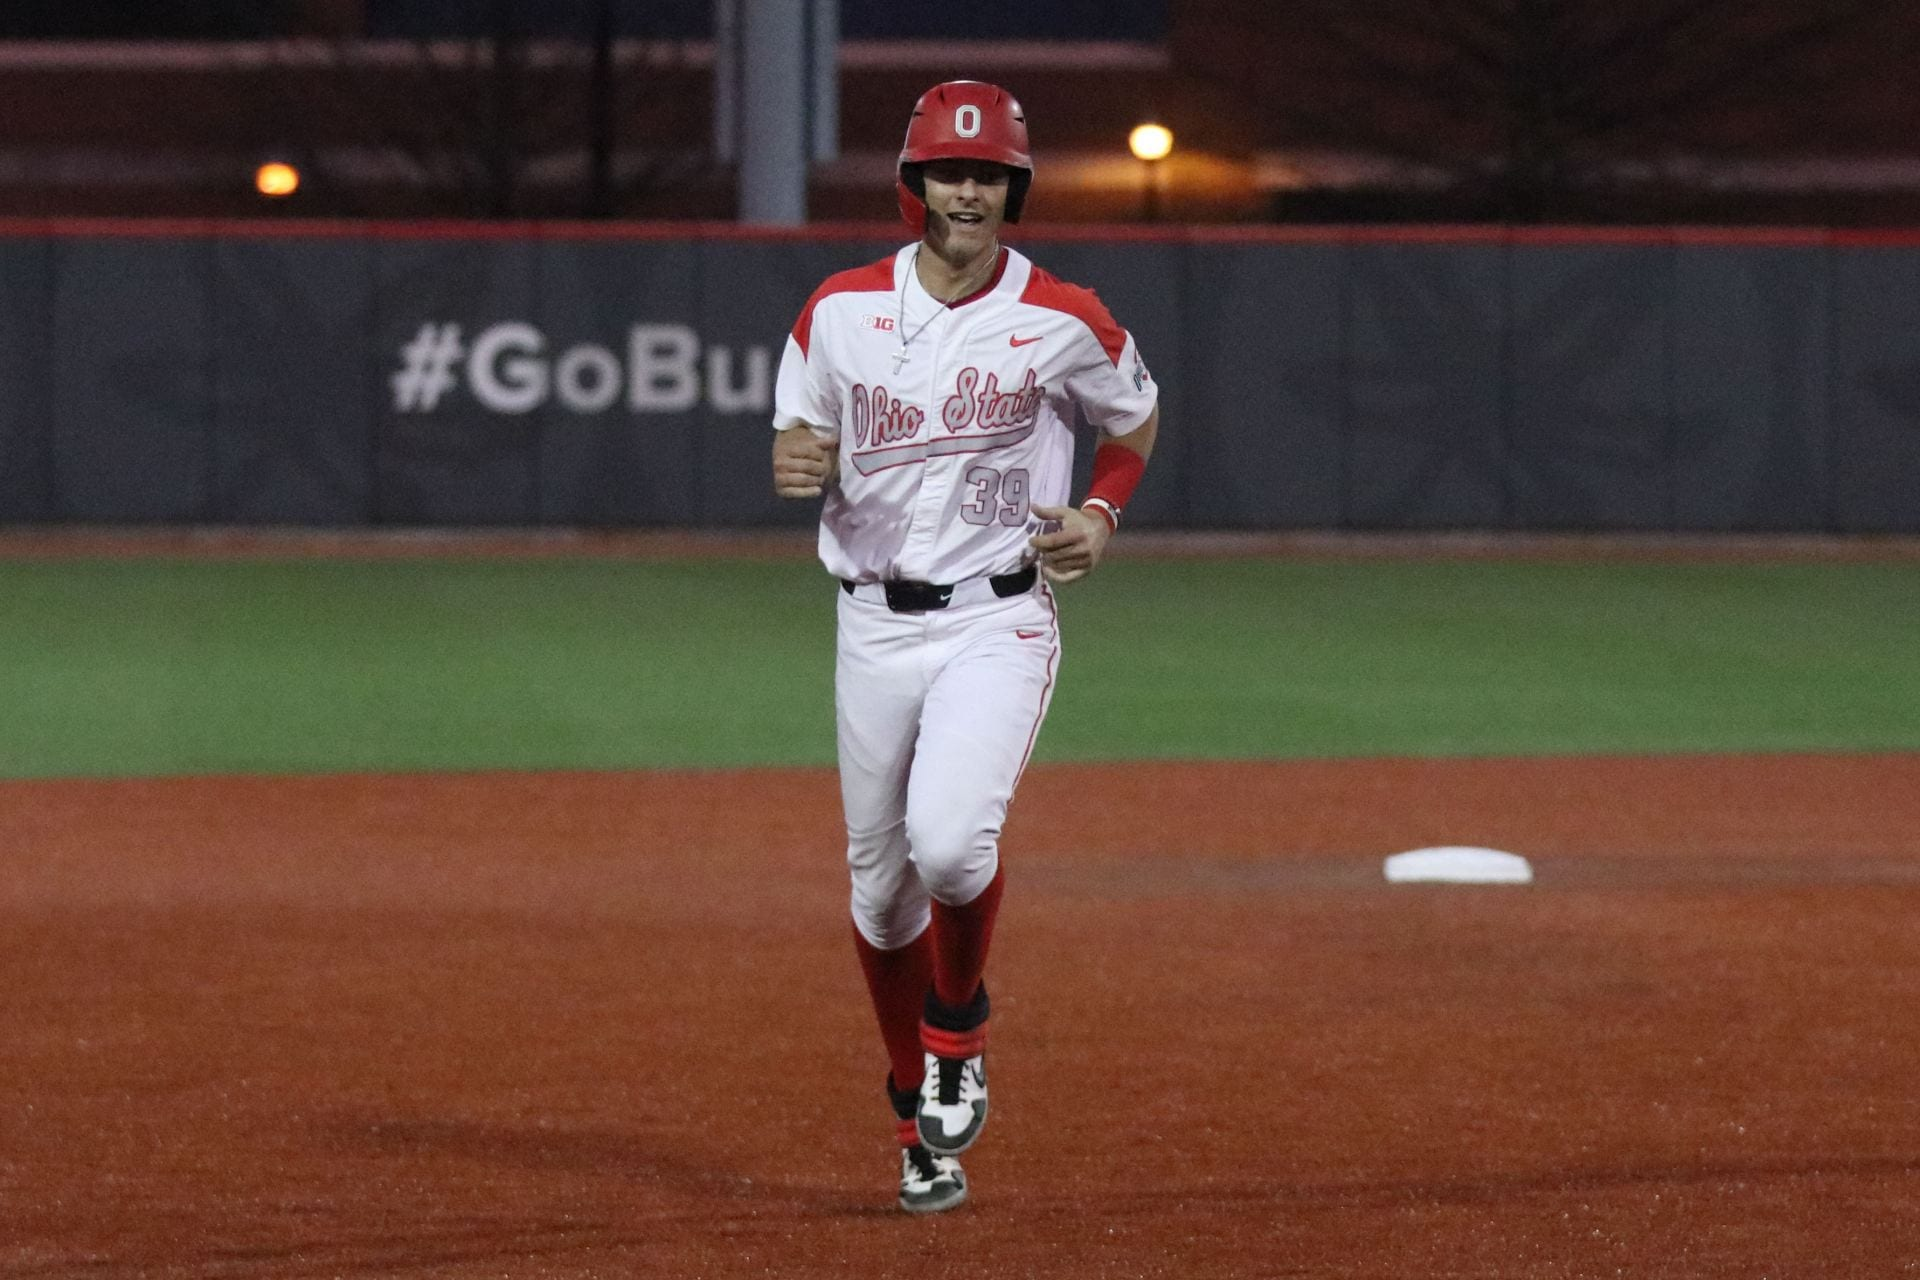 Baseball: Ohio State faces crucial Big Ten road test against Maryland